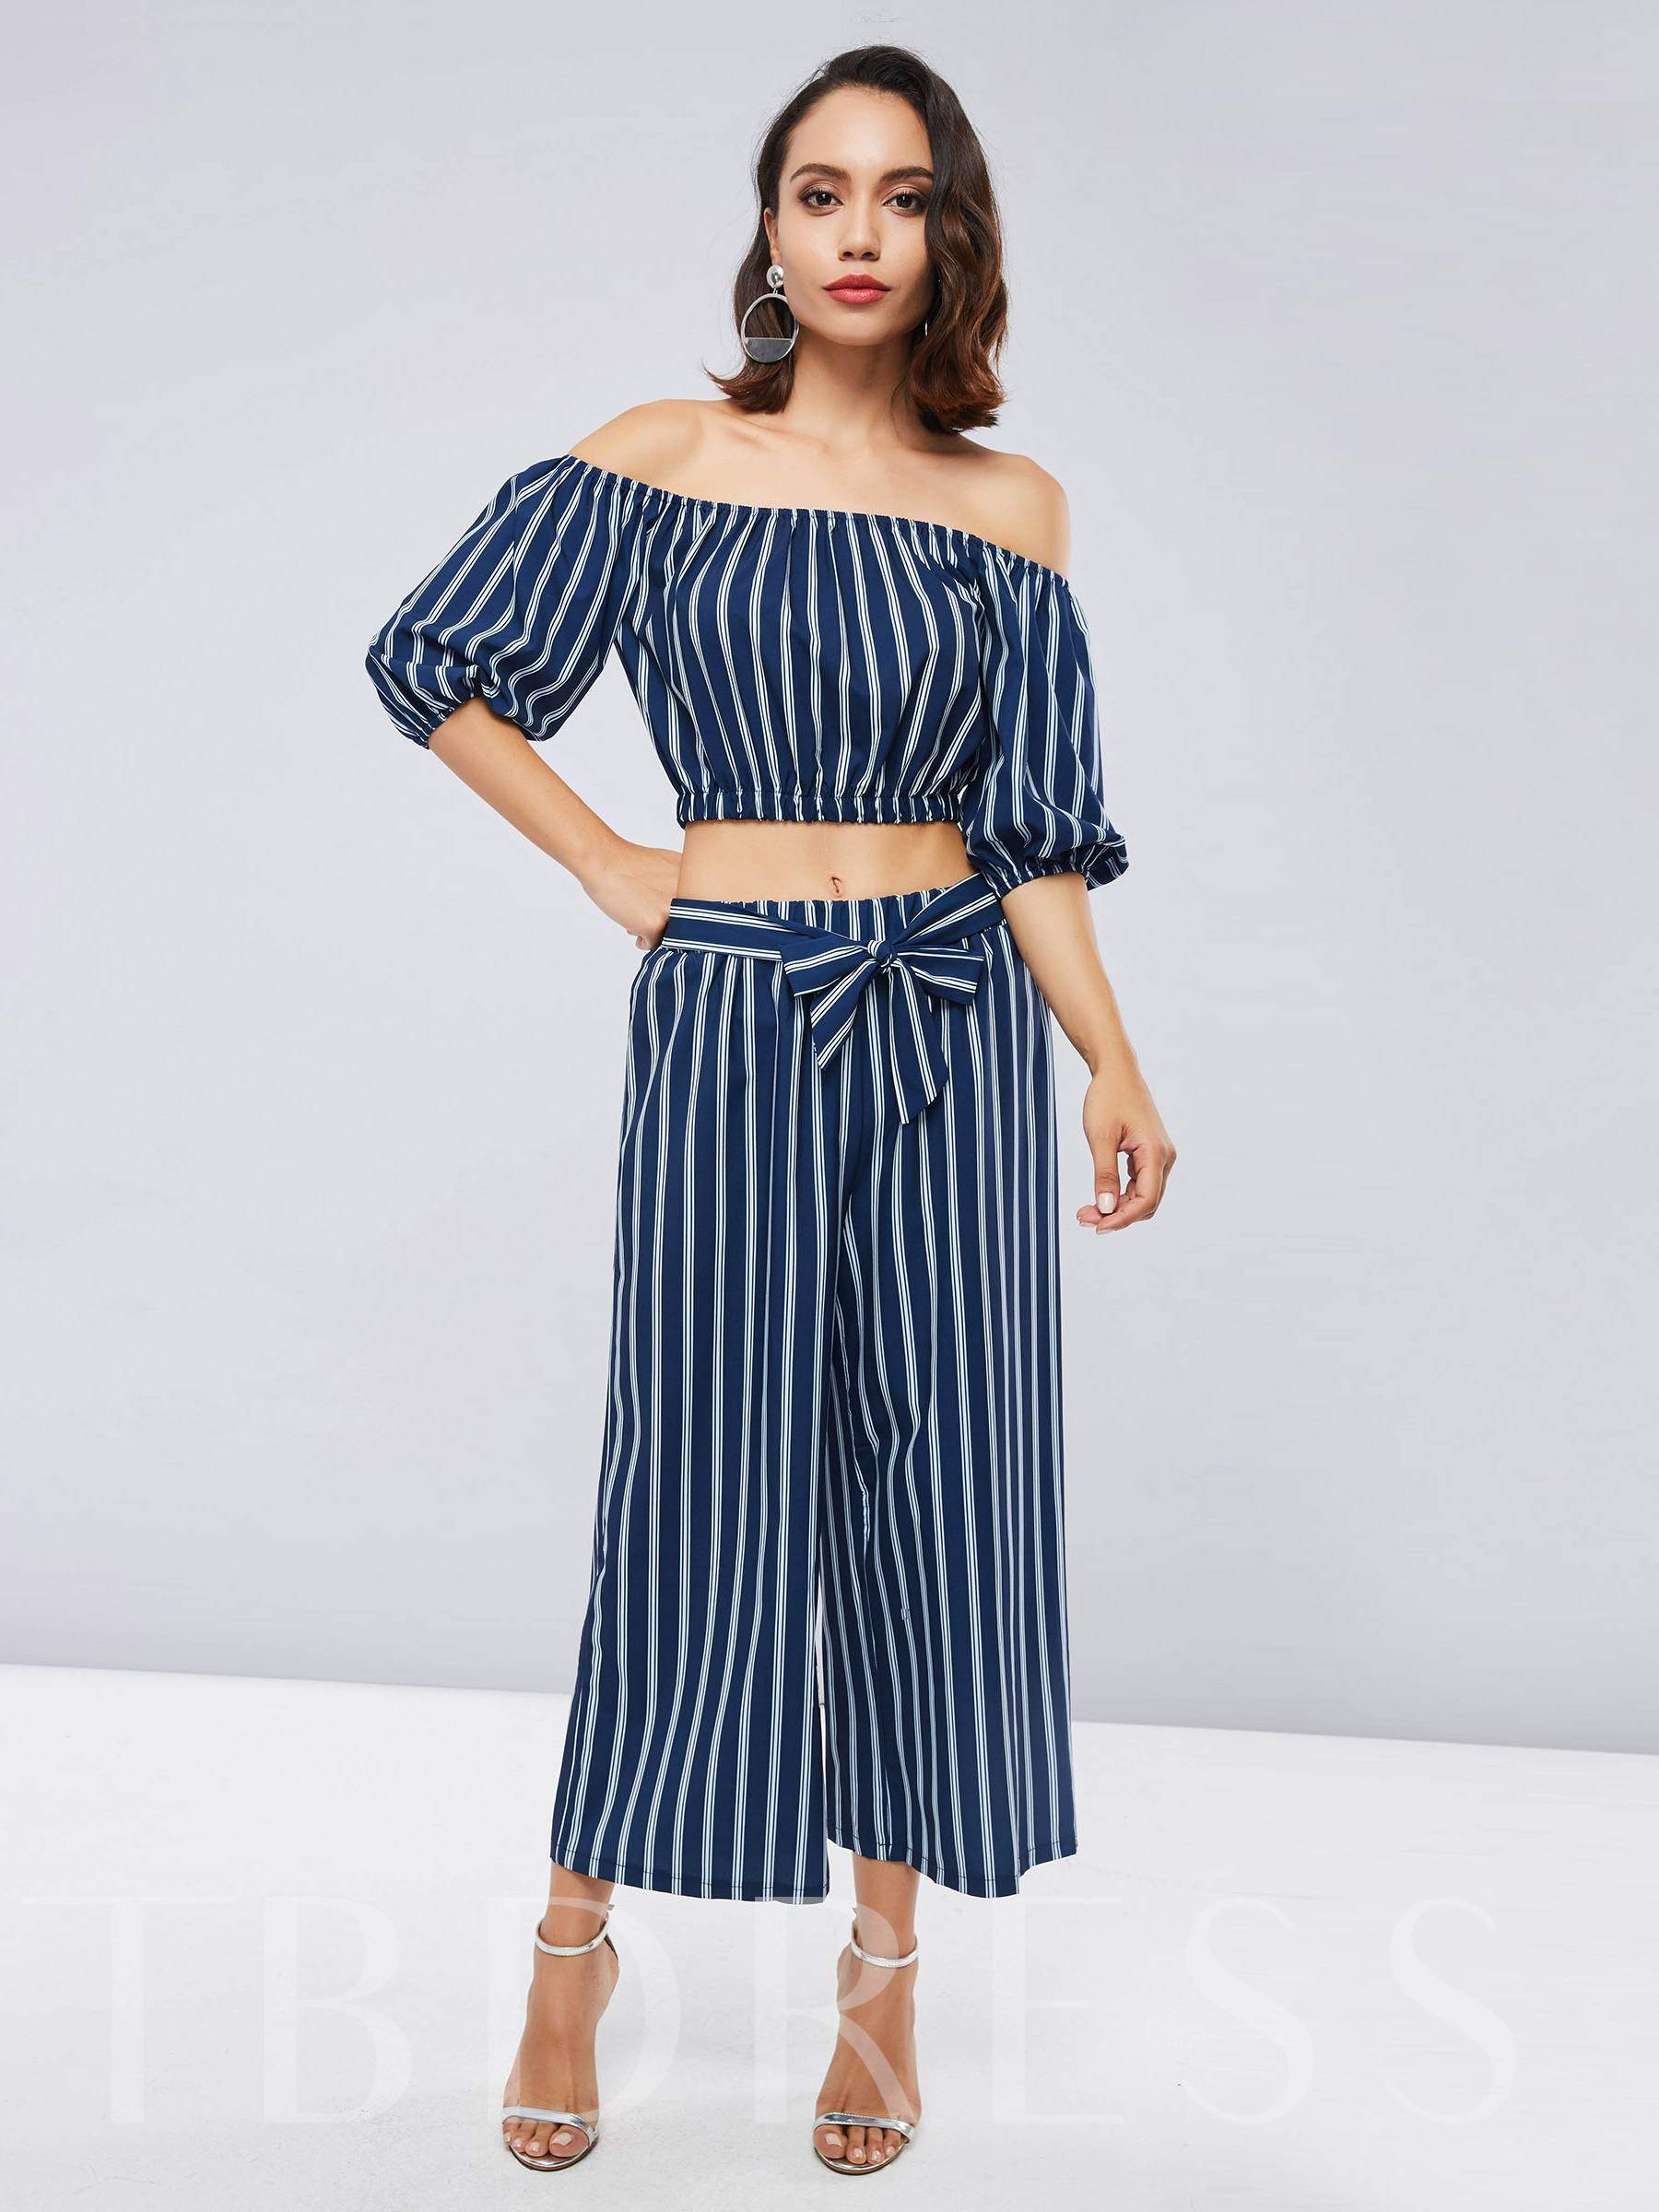 Buy Stripe Off Shoulder Tank Top and Pants Women's Two Piece Set, 13402762 for $22.76 in TBDress store